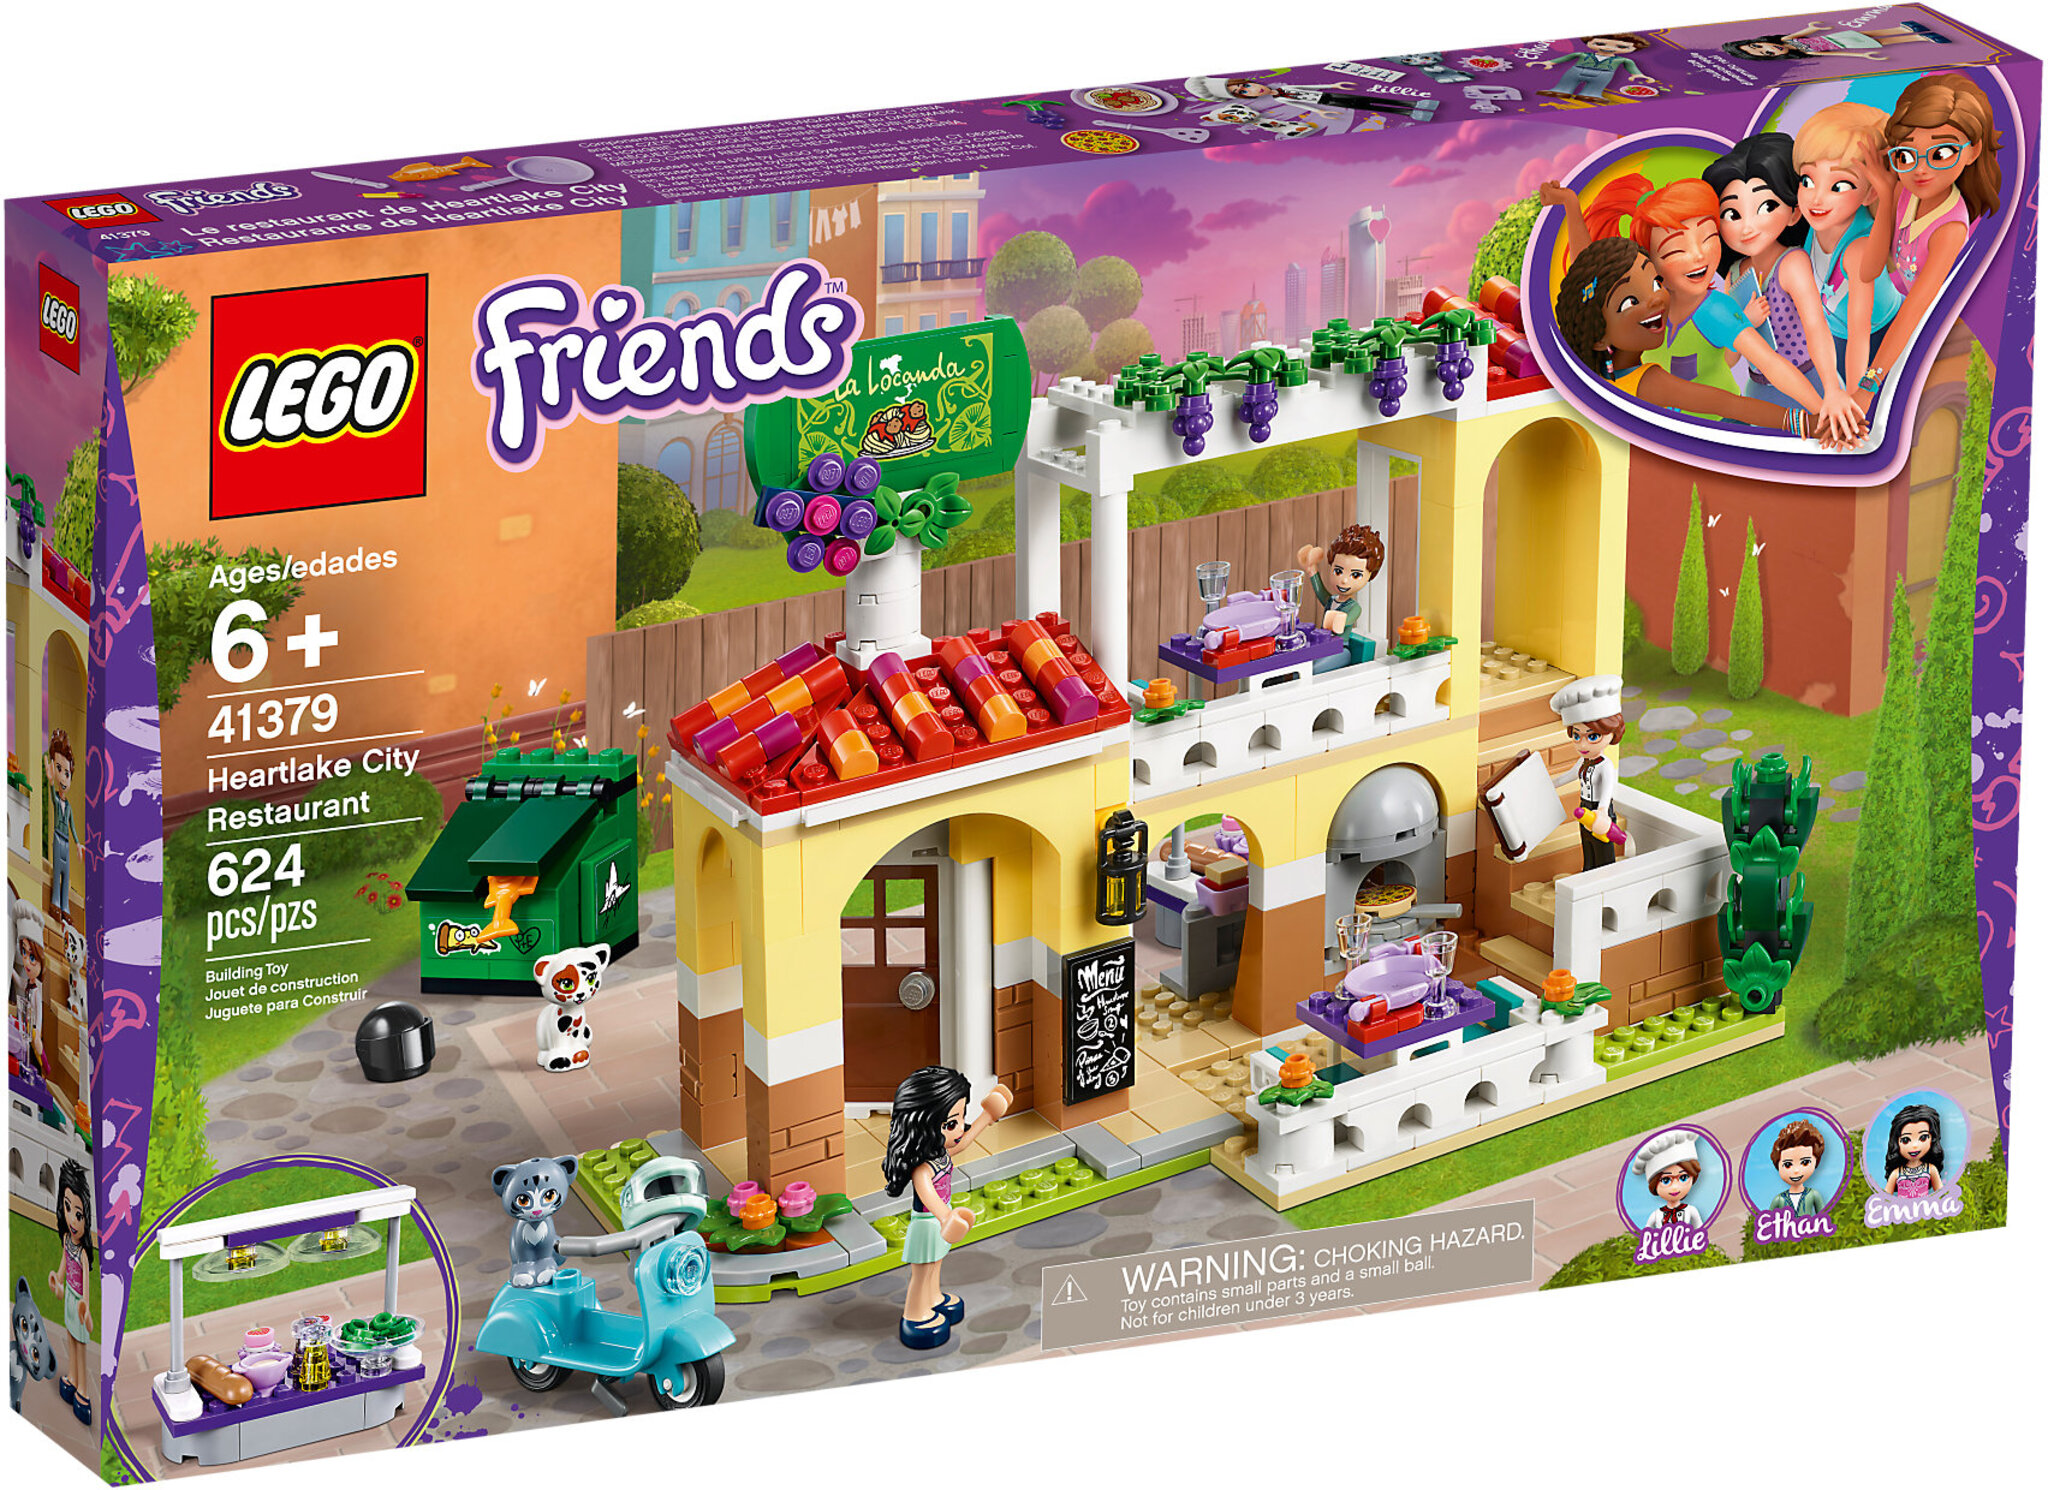 City Lego Heartlake Friends Restaurant 41379 jSUGLqzMpV